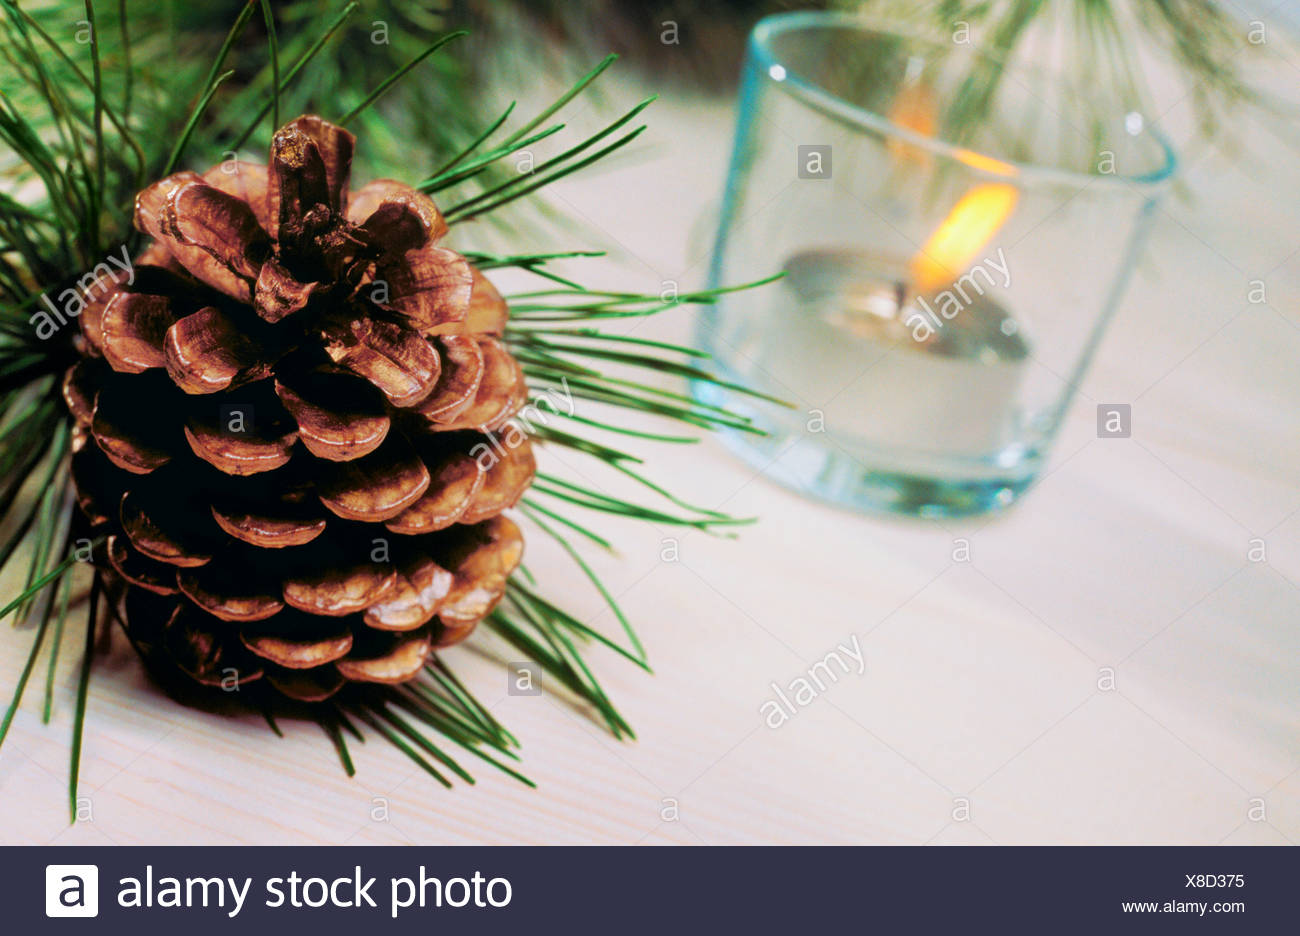 Titled view of a pinecone and a tea candle inside a glass - Stock Image